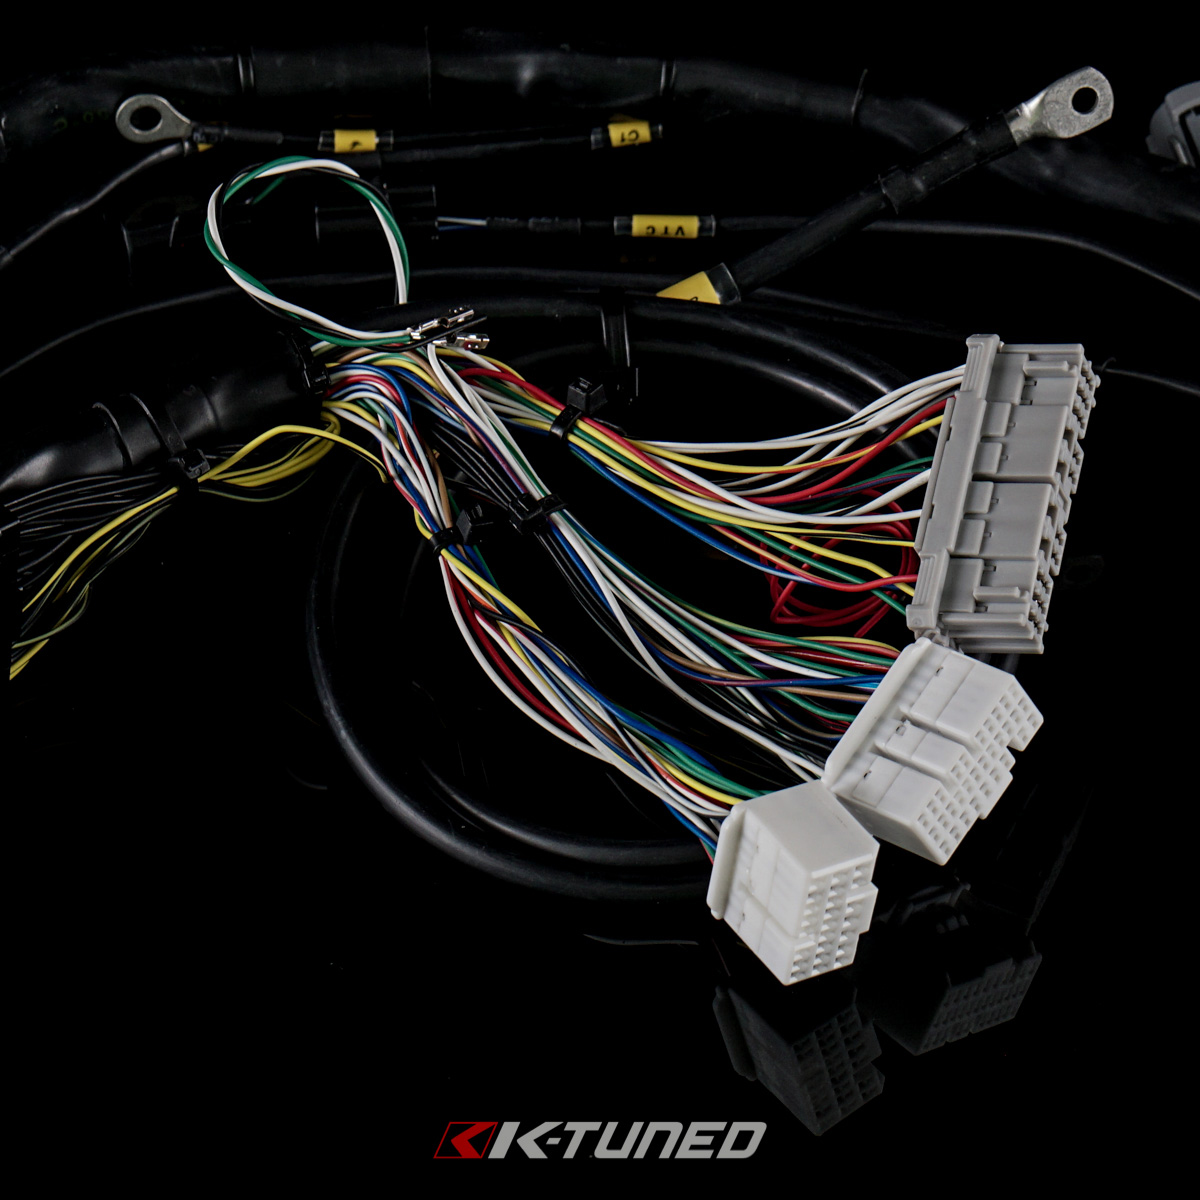 KTH 204 ENG_020 k series tucked engine harness rsx tucked wire harness at pacquiaovsvargaslive.co